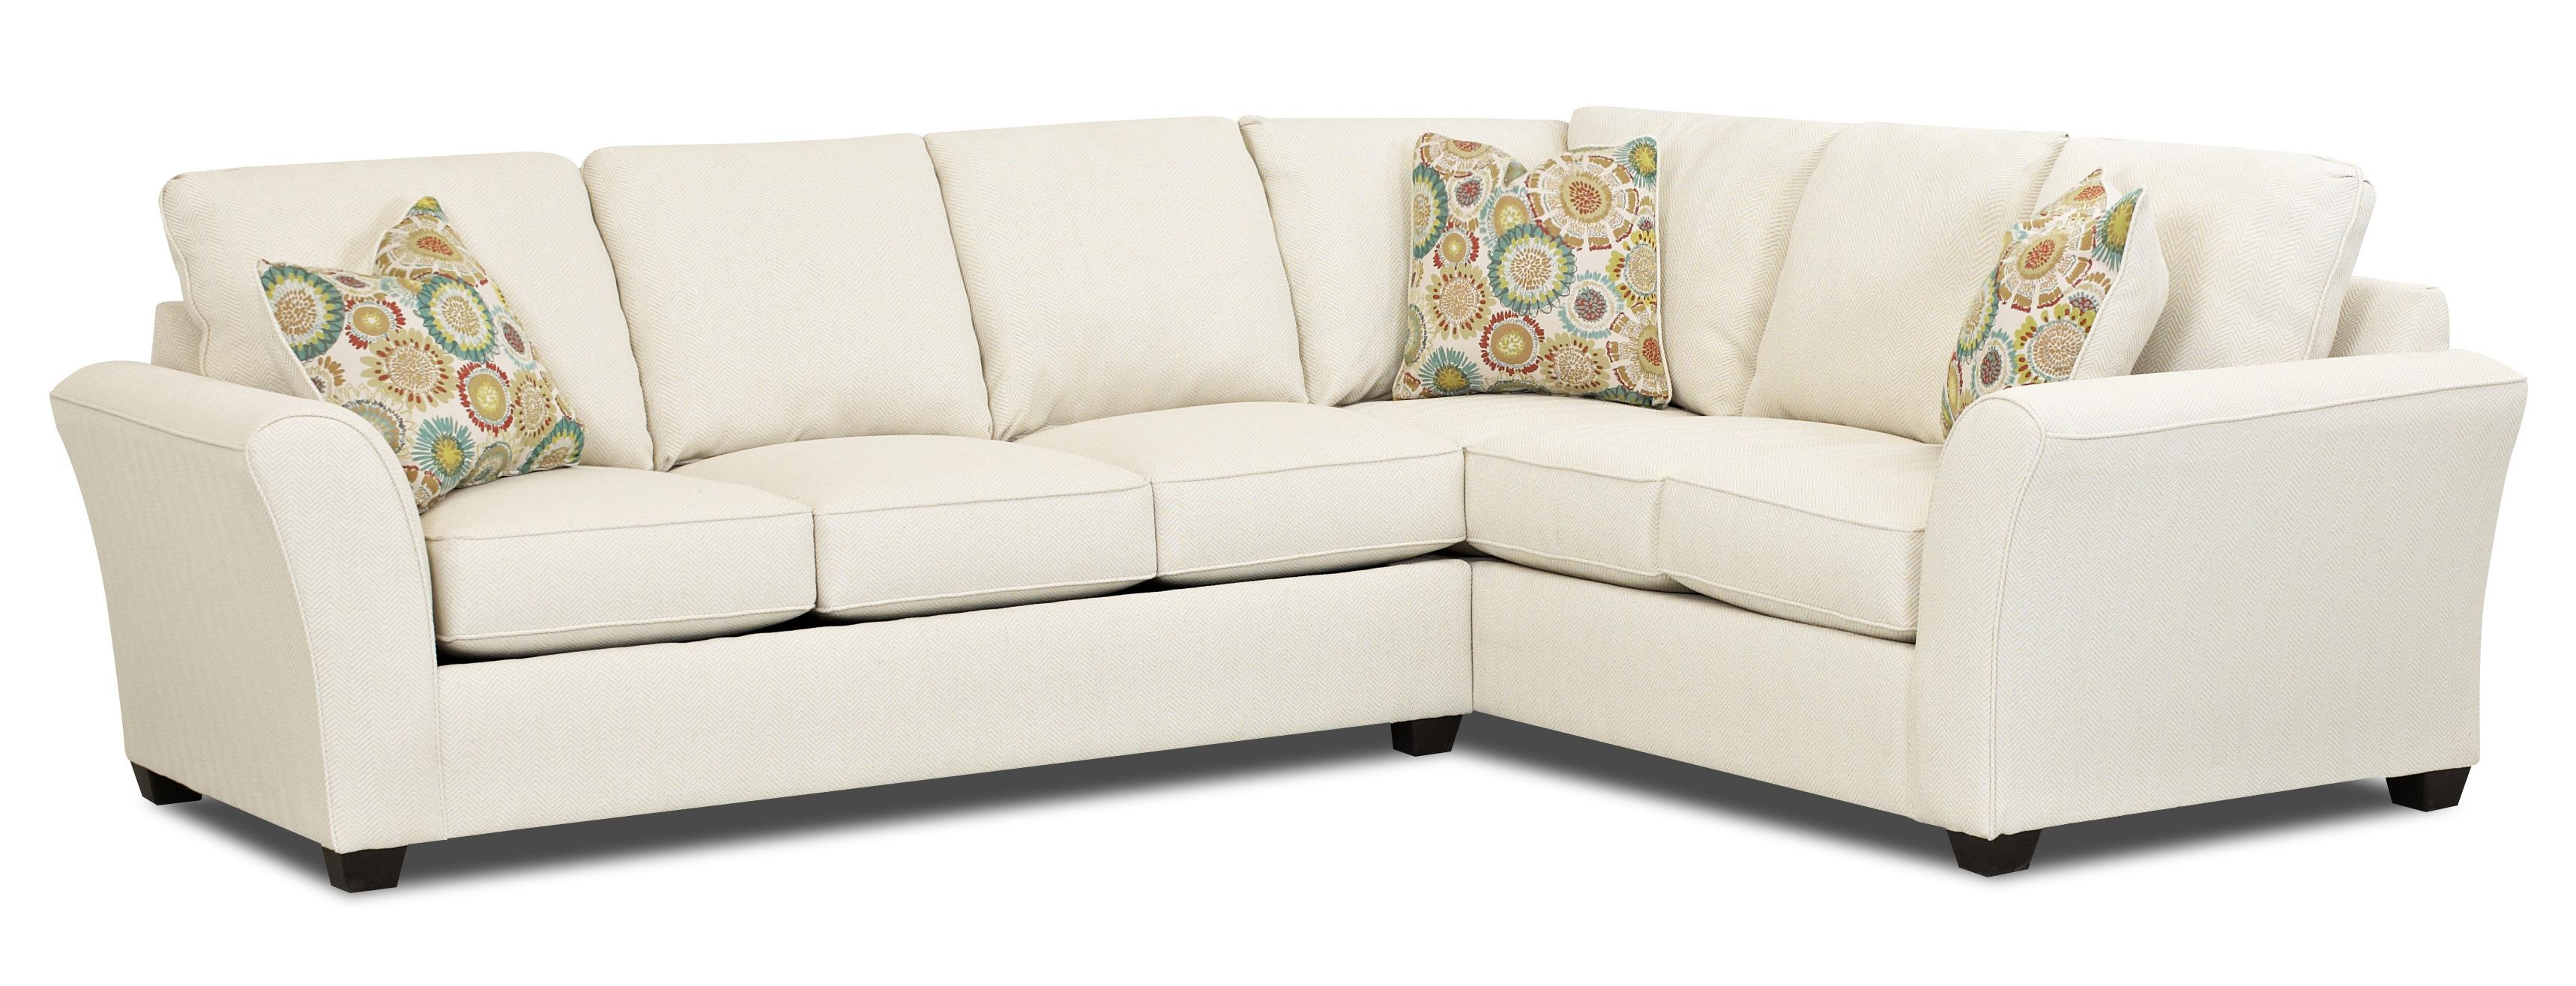 Transitional 2 piece sectional sofa by klaussner wolf for 2 piece sectional sofa cheap